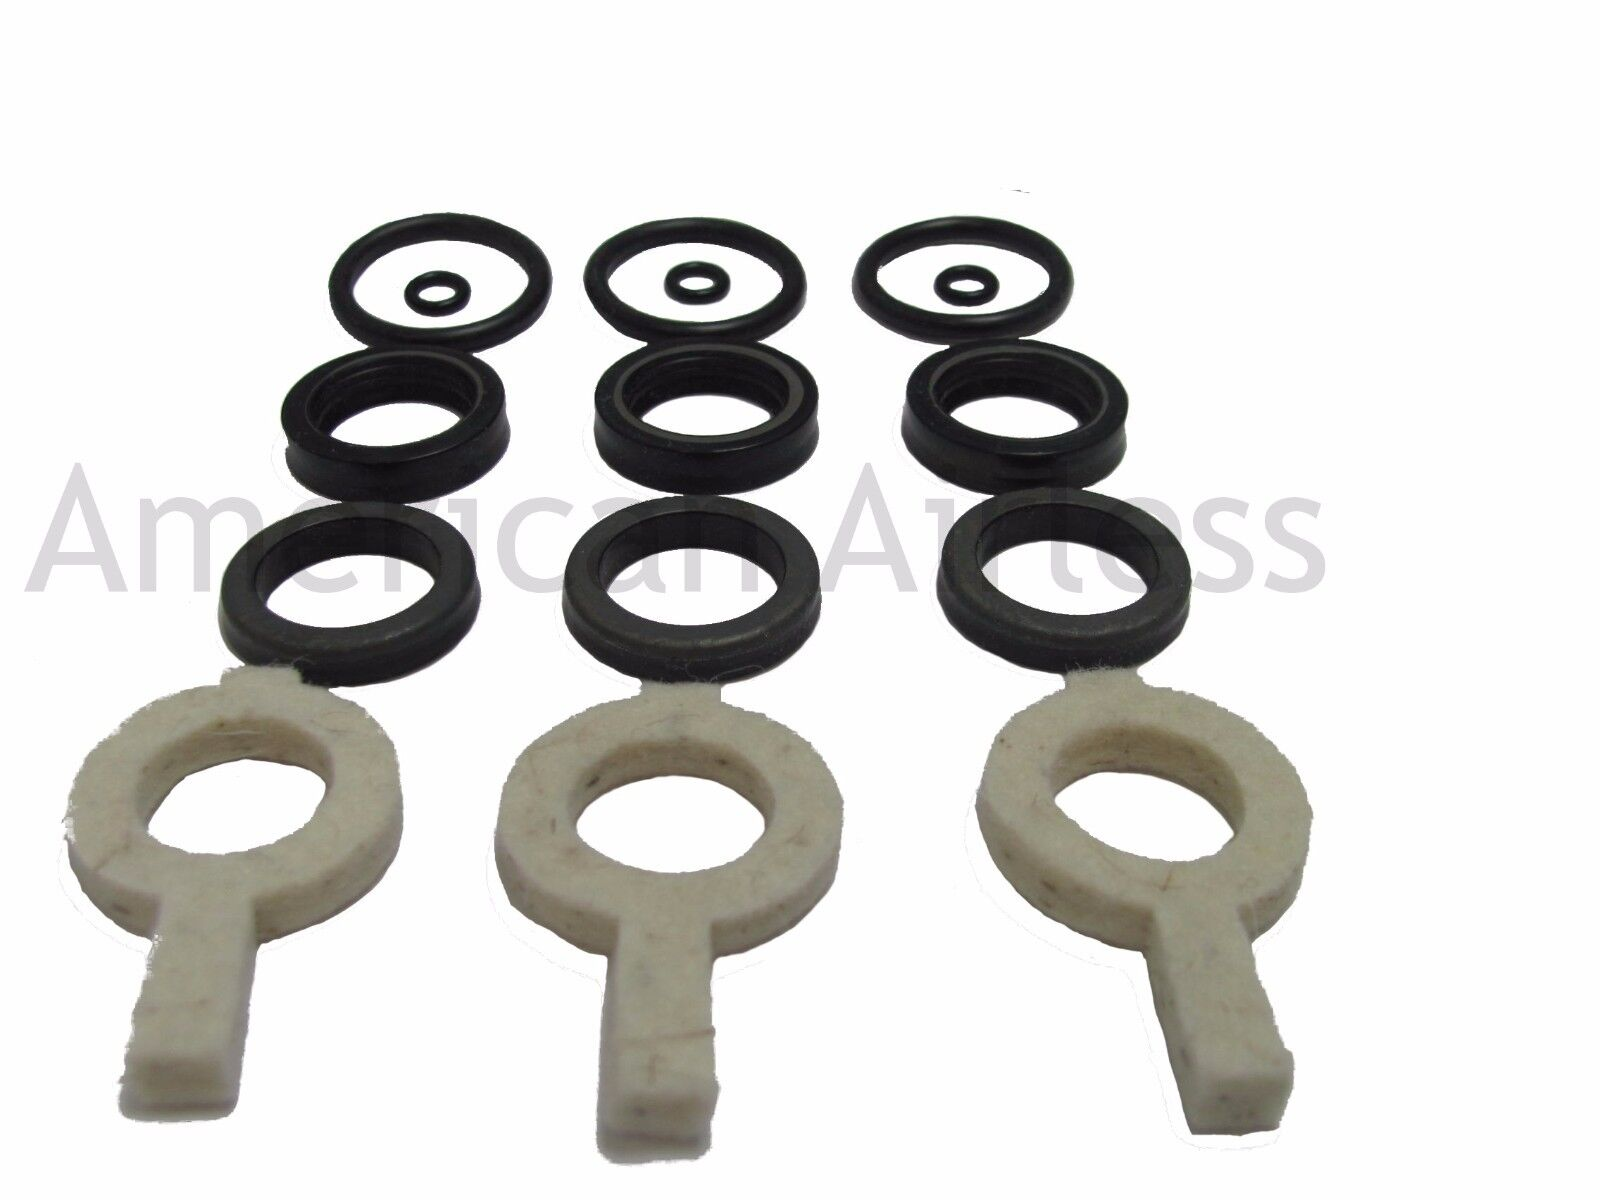 CAT Replacment Seal Kit Replaces CAT Kit 30488 for CAT 53 58 58G1 18mm